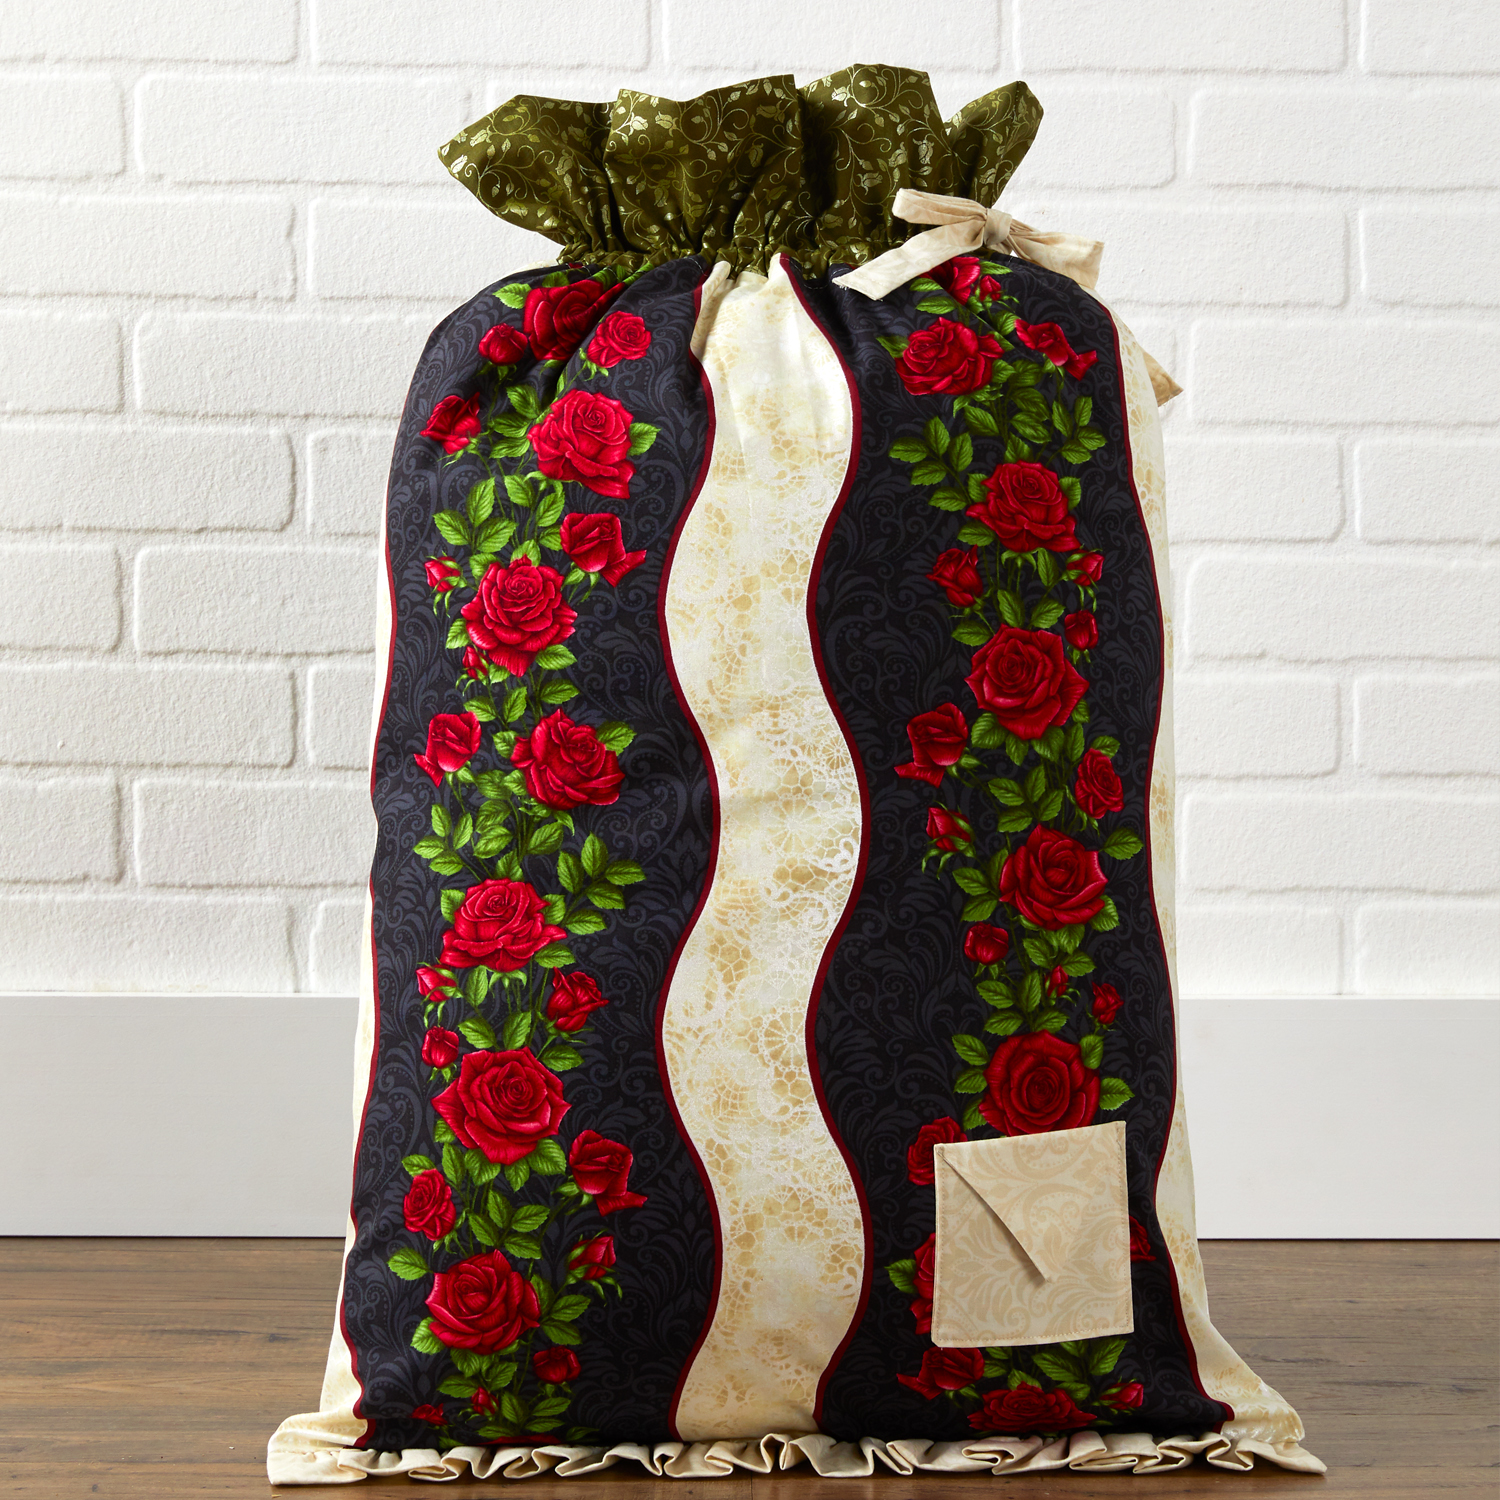 Pillowcase Gift Bag